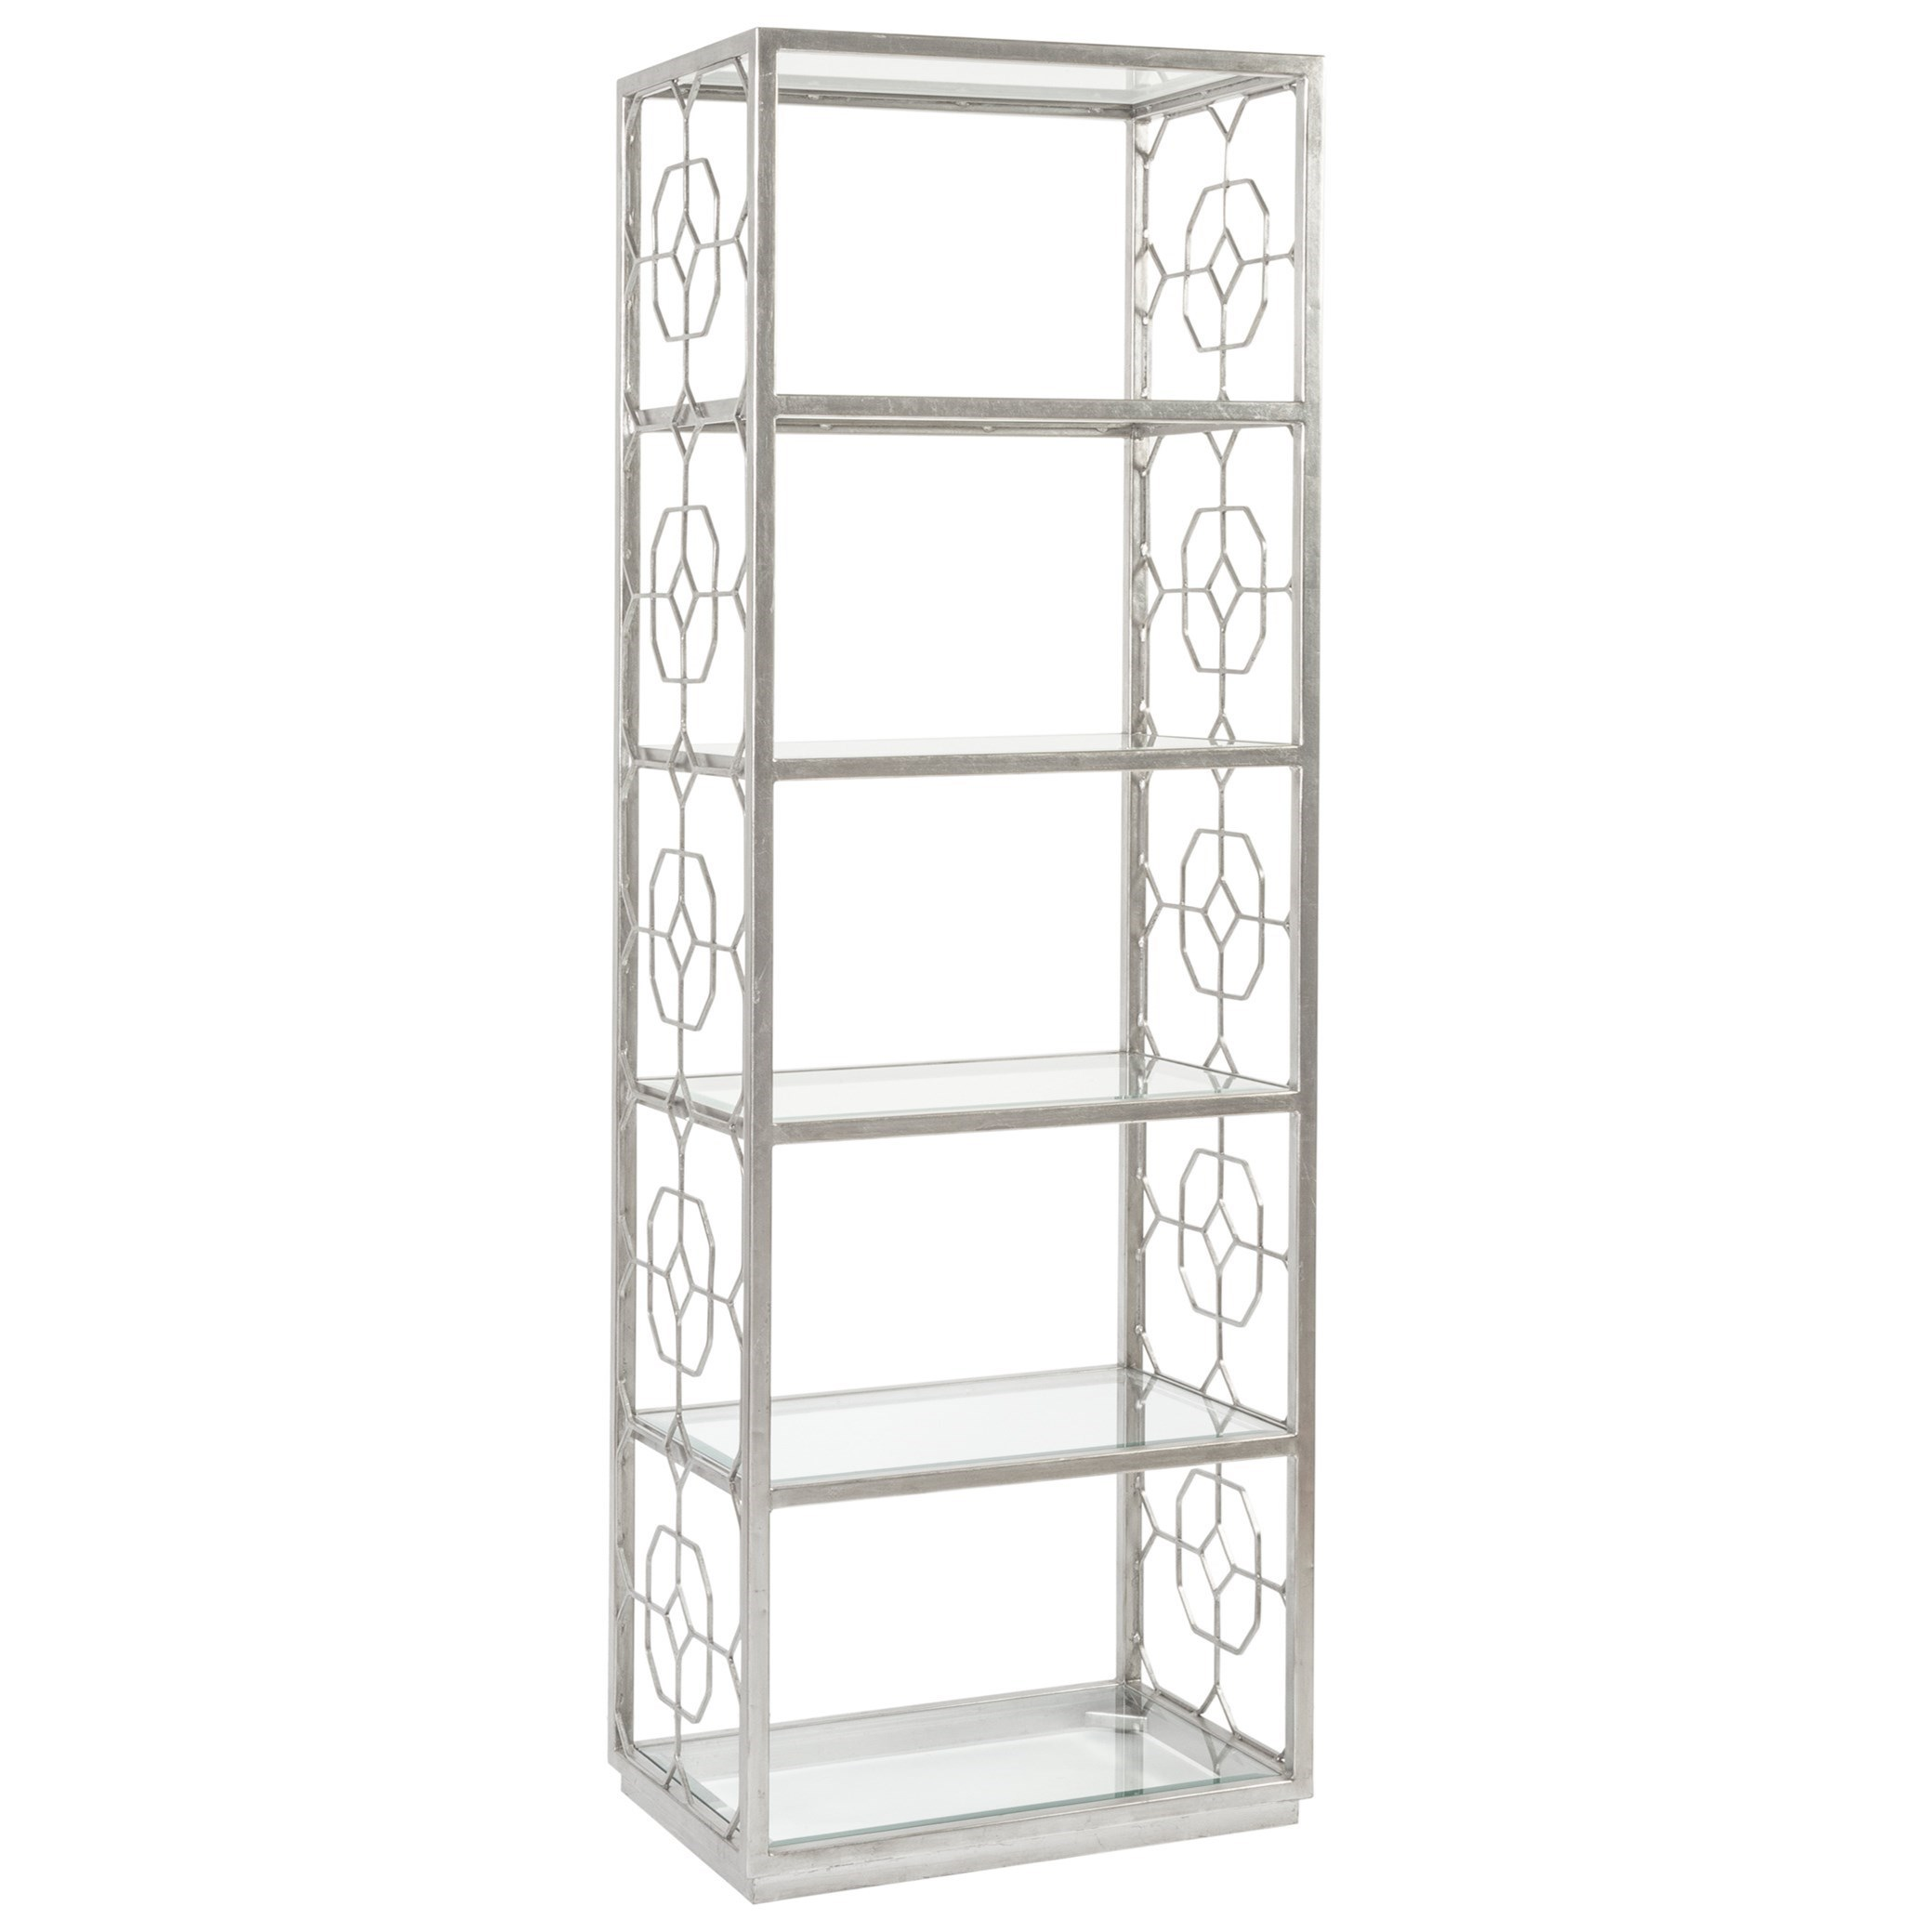 Metal Designs Honeycomb Slim Etagere by Artistica at Baer's Furniture